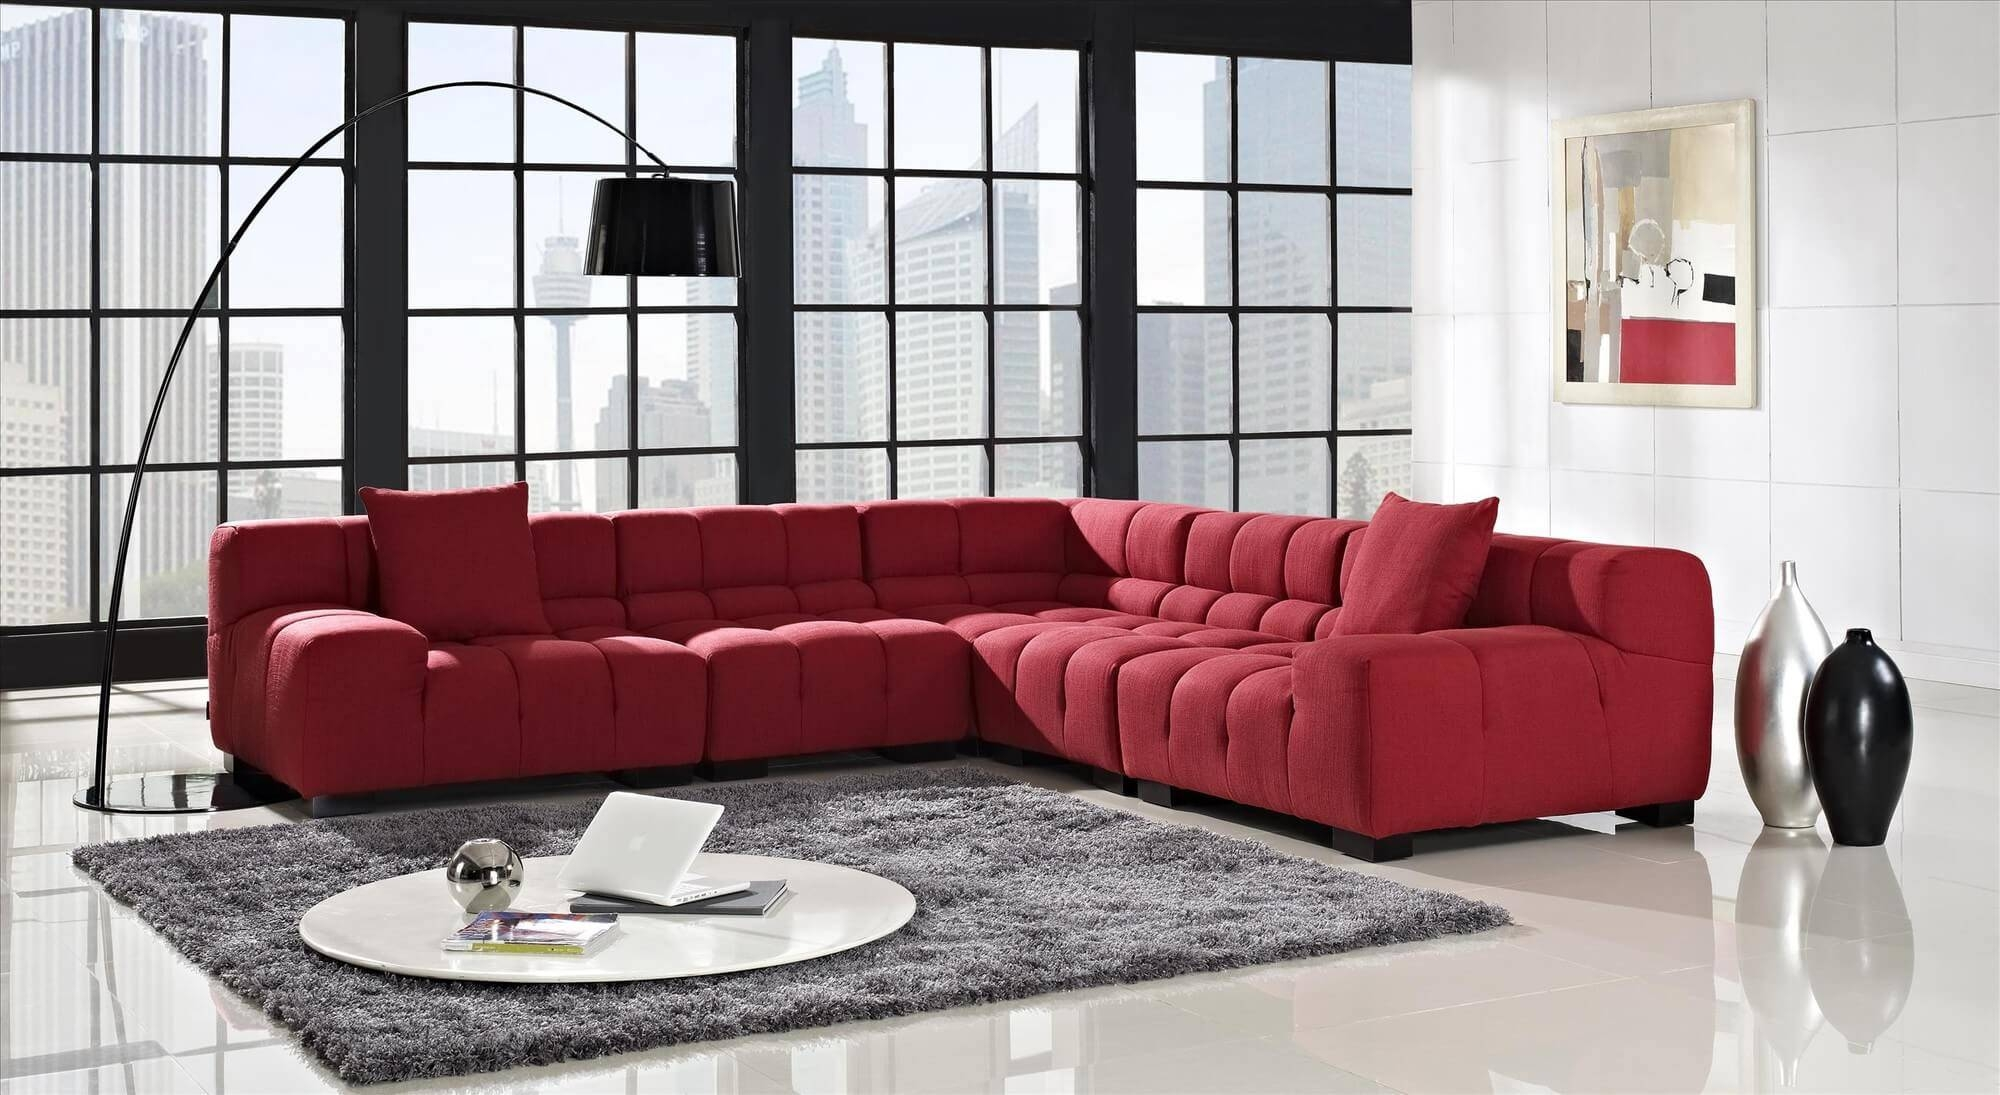 Sectional Sofas Rochester Ny – Thesecretconsul Intended For Rochester Sectional Sofas (View 4 of 15)